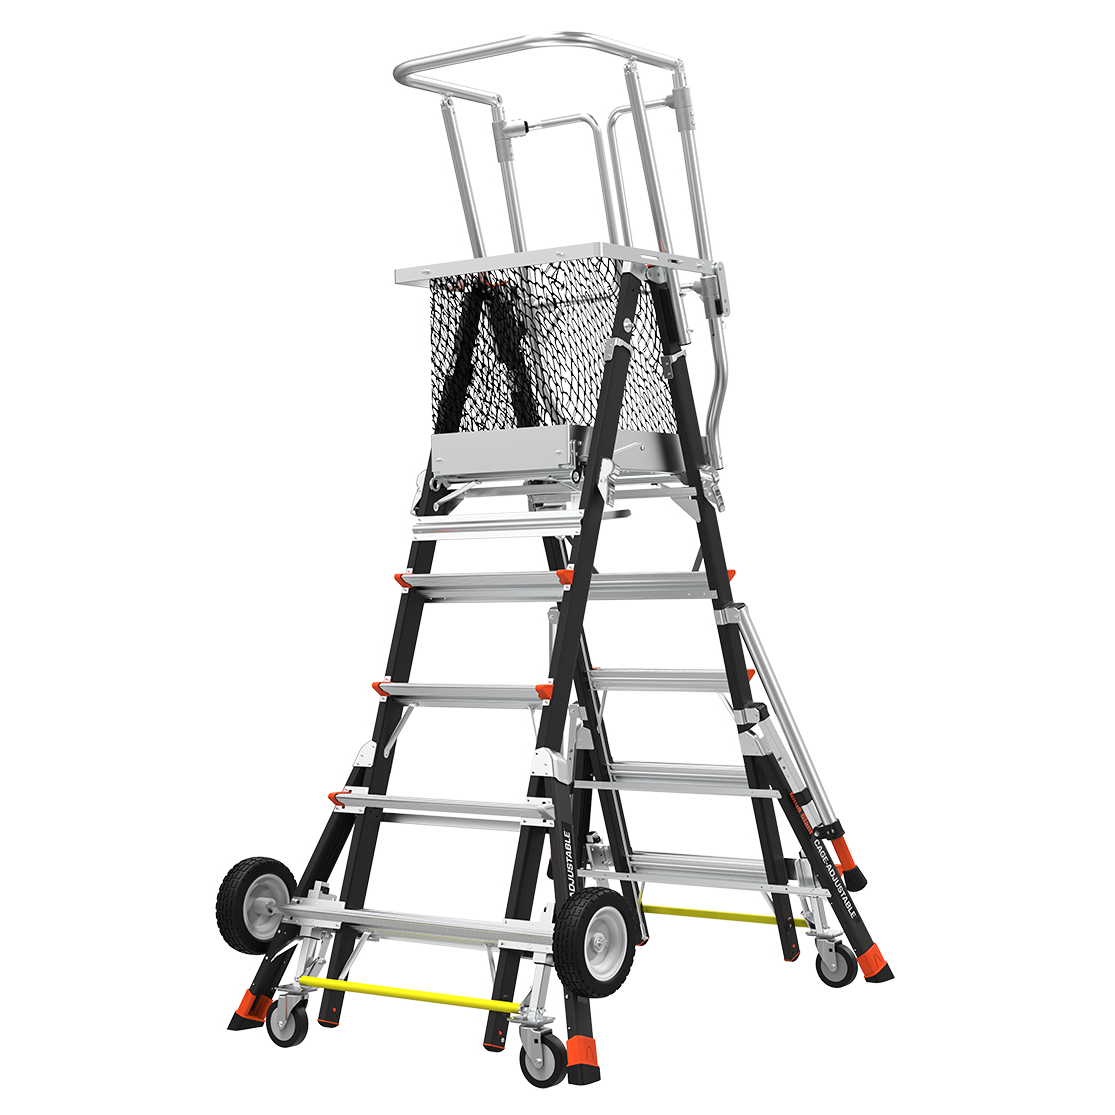 Adj. Safety Cage Model 5-9 Fiberglass Ladder, All-Terrain Wheels, IAA